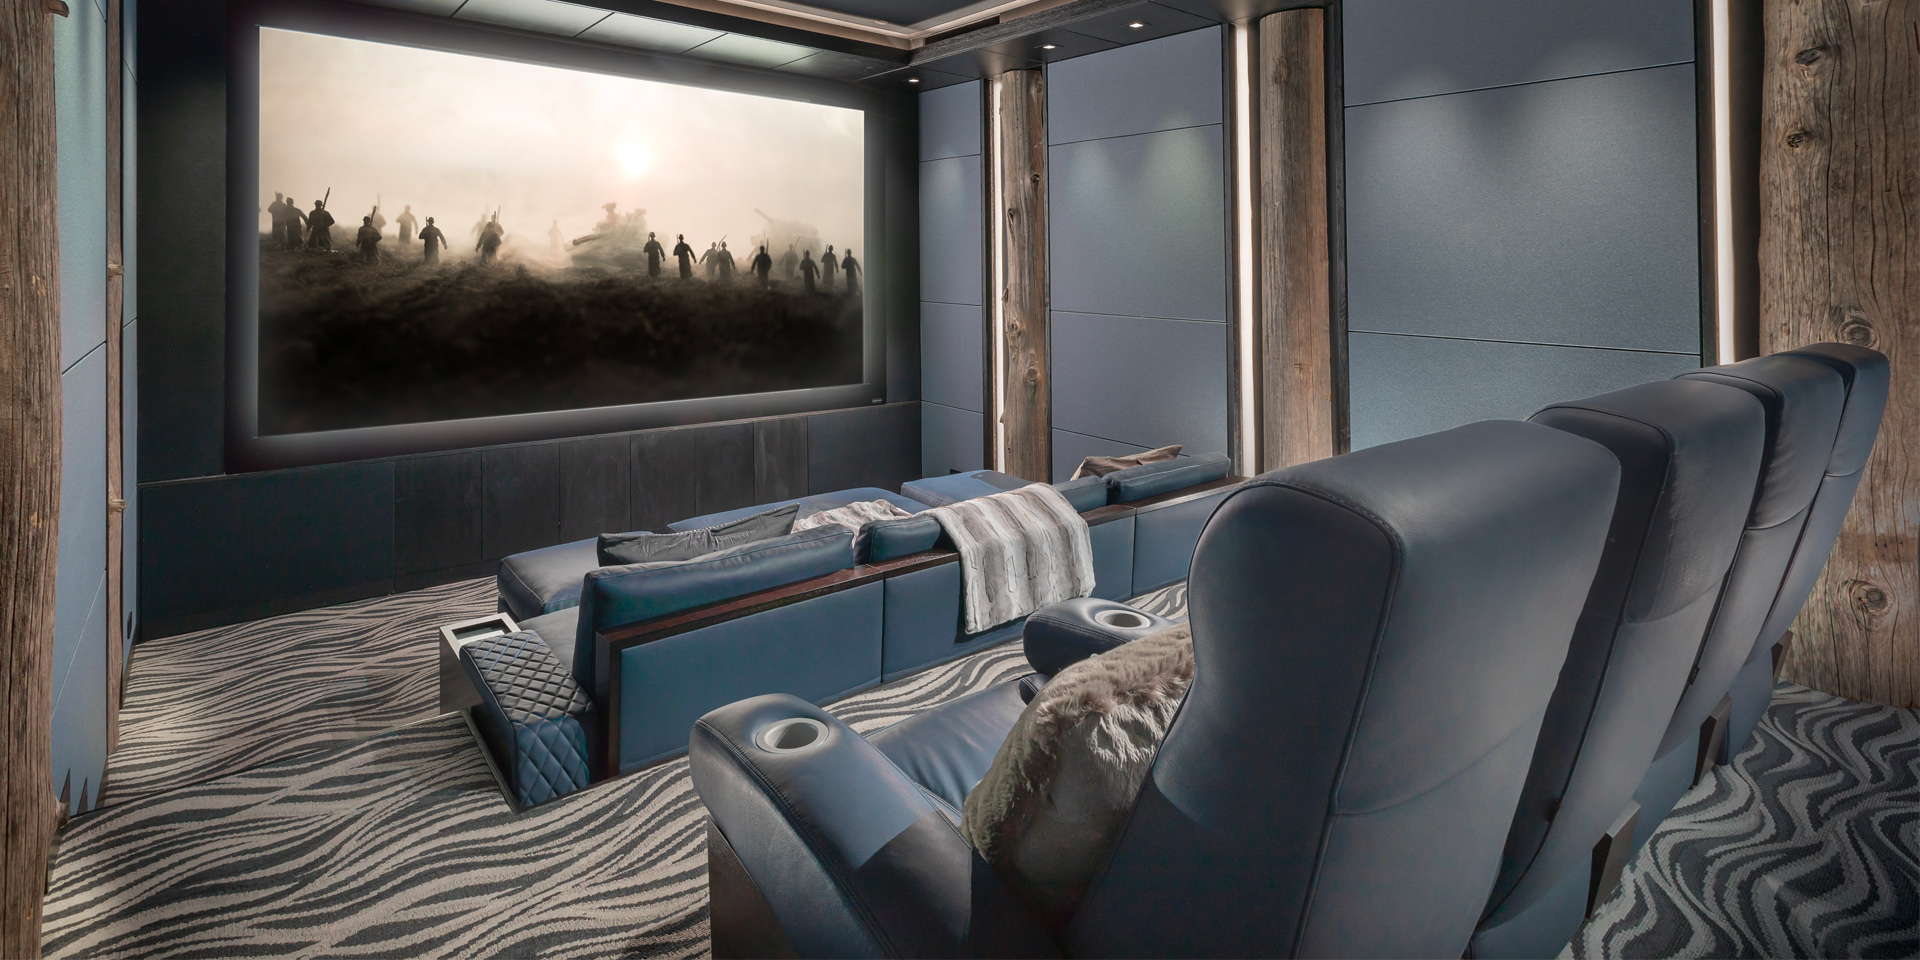 Cosymo & Fortuny Luxury home theater seating